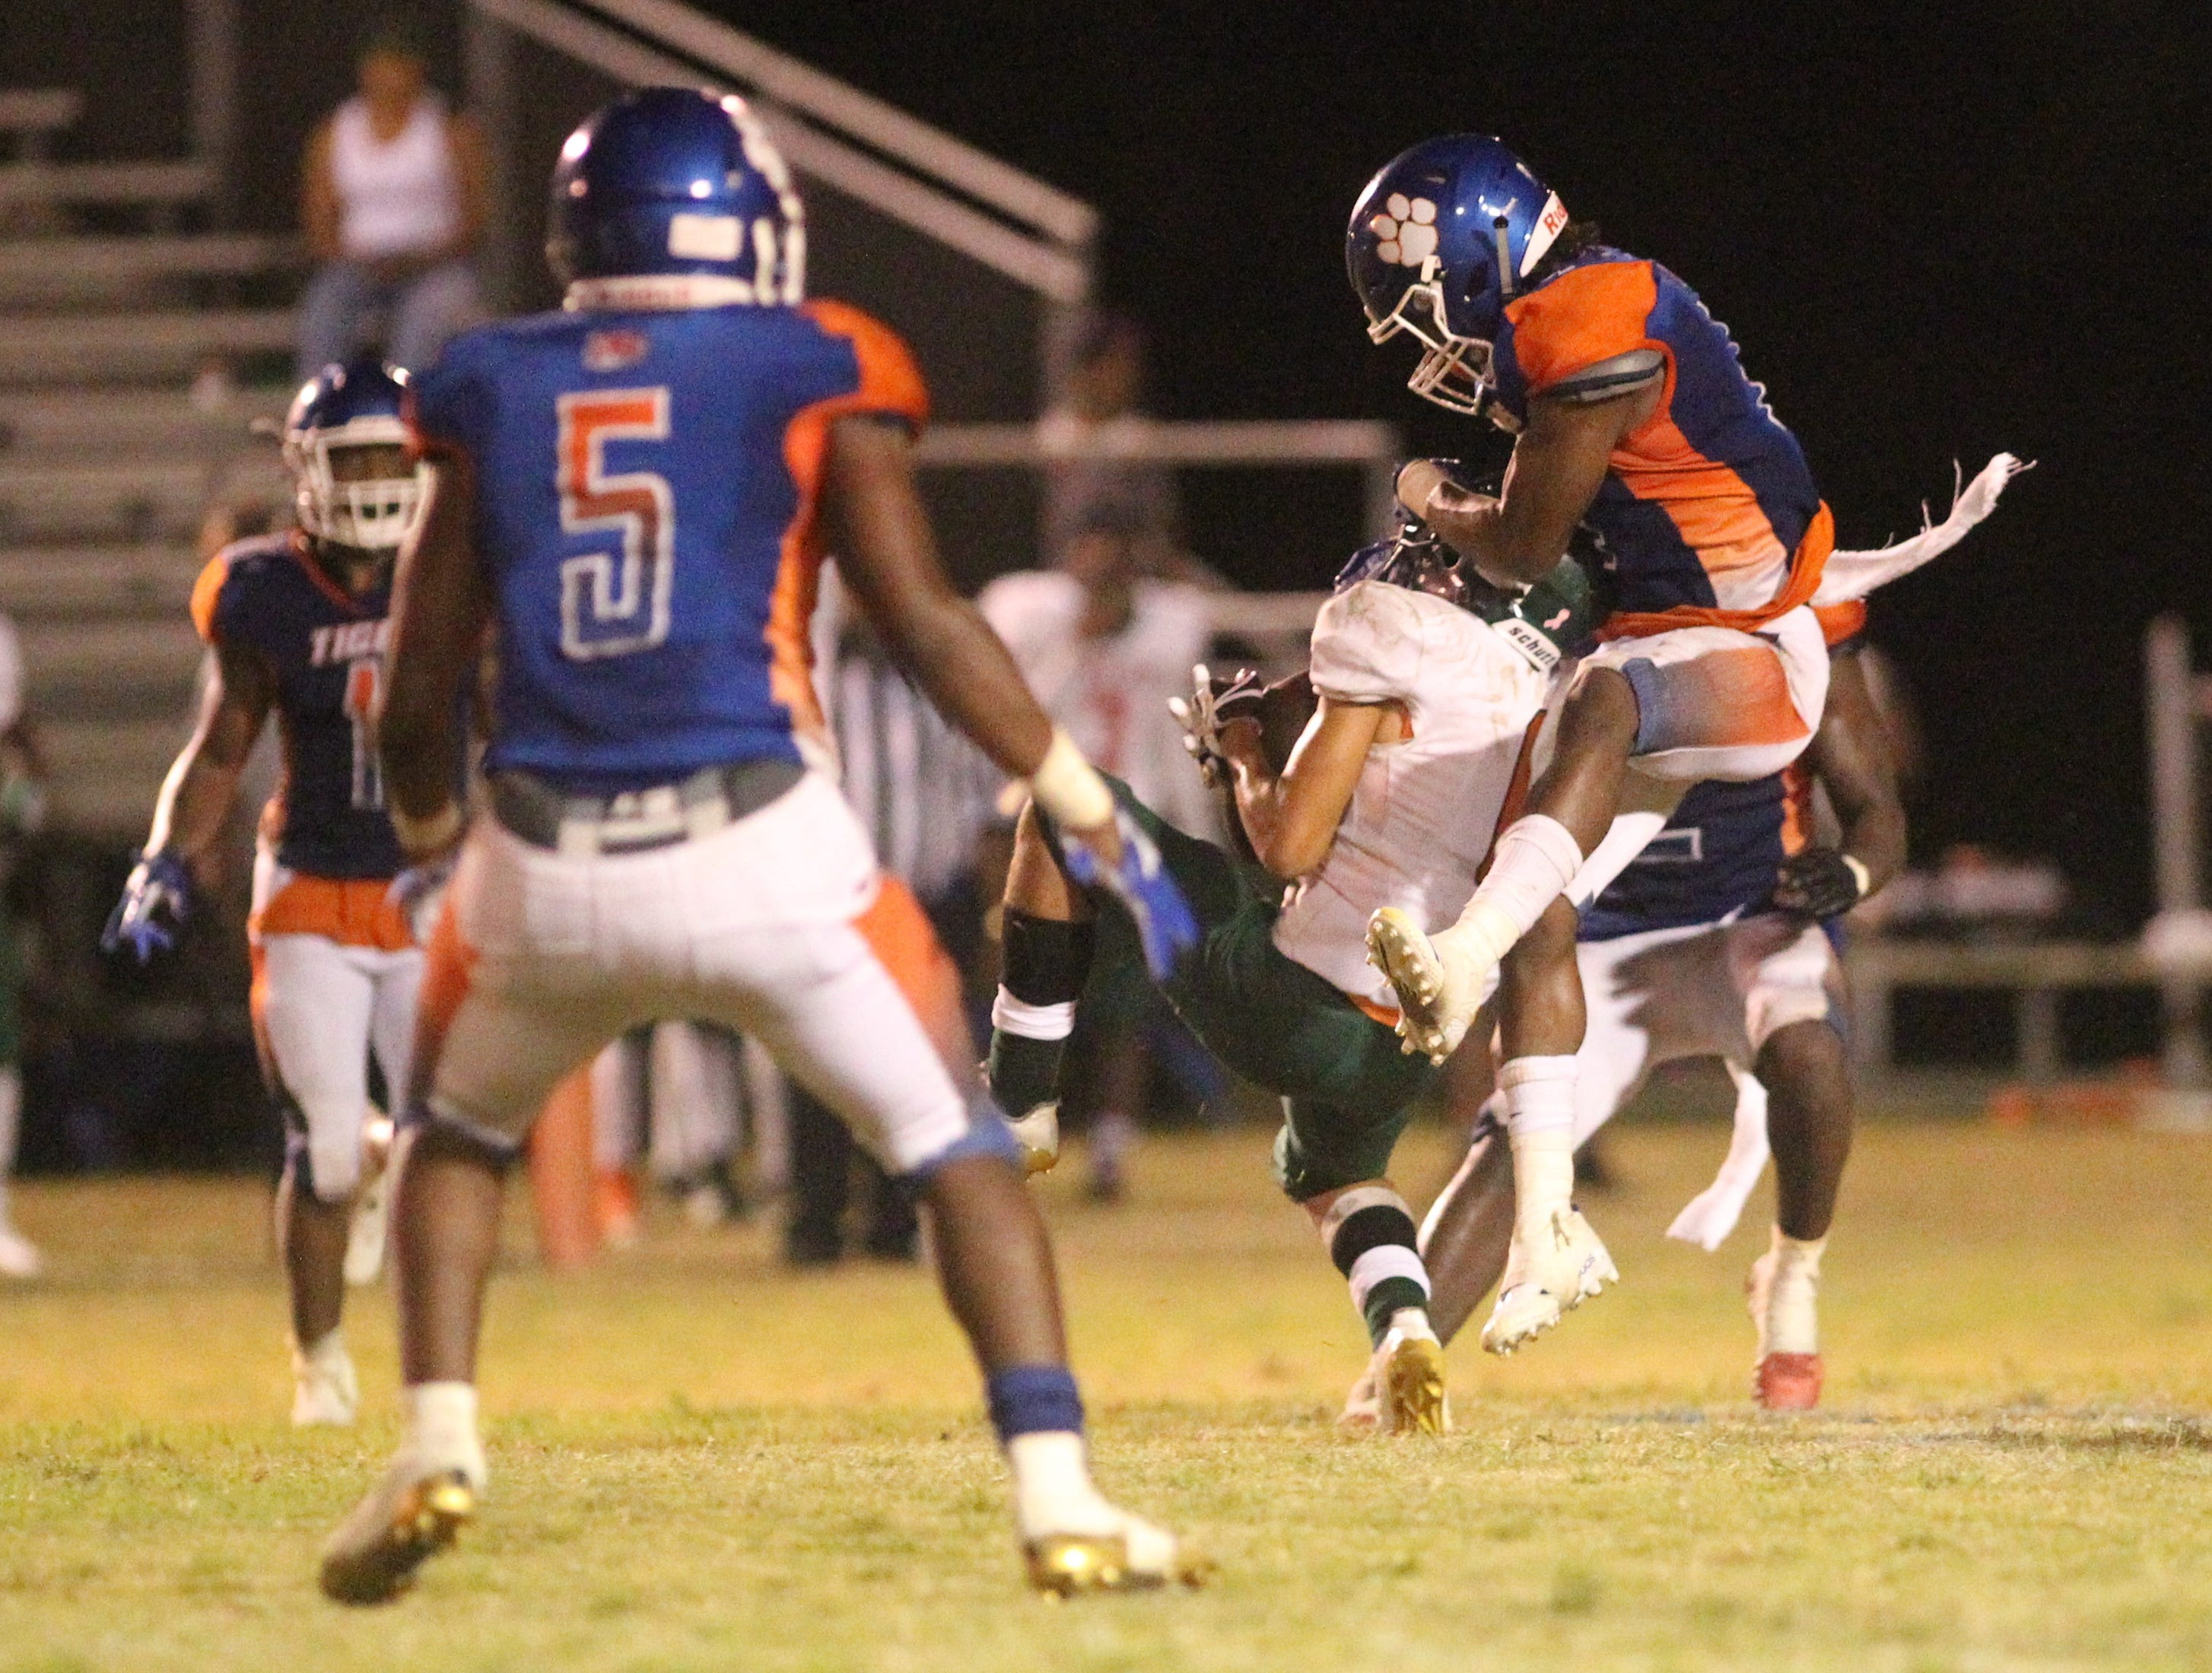 FAMU DRS plays at Jefferson County in a high school football game on Friday, Sept. 21, 2018. The host Tigers won 25-22.